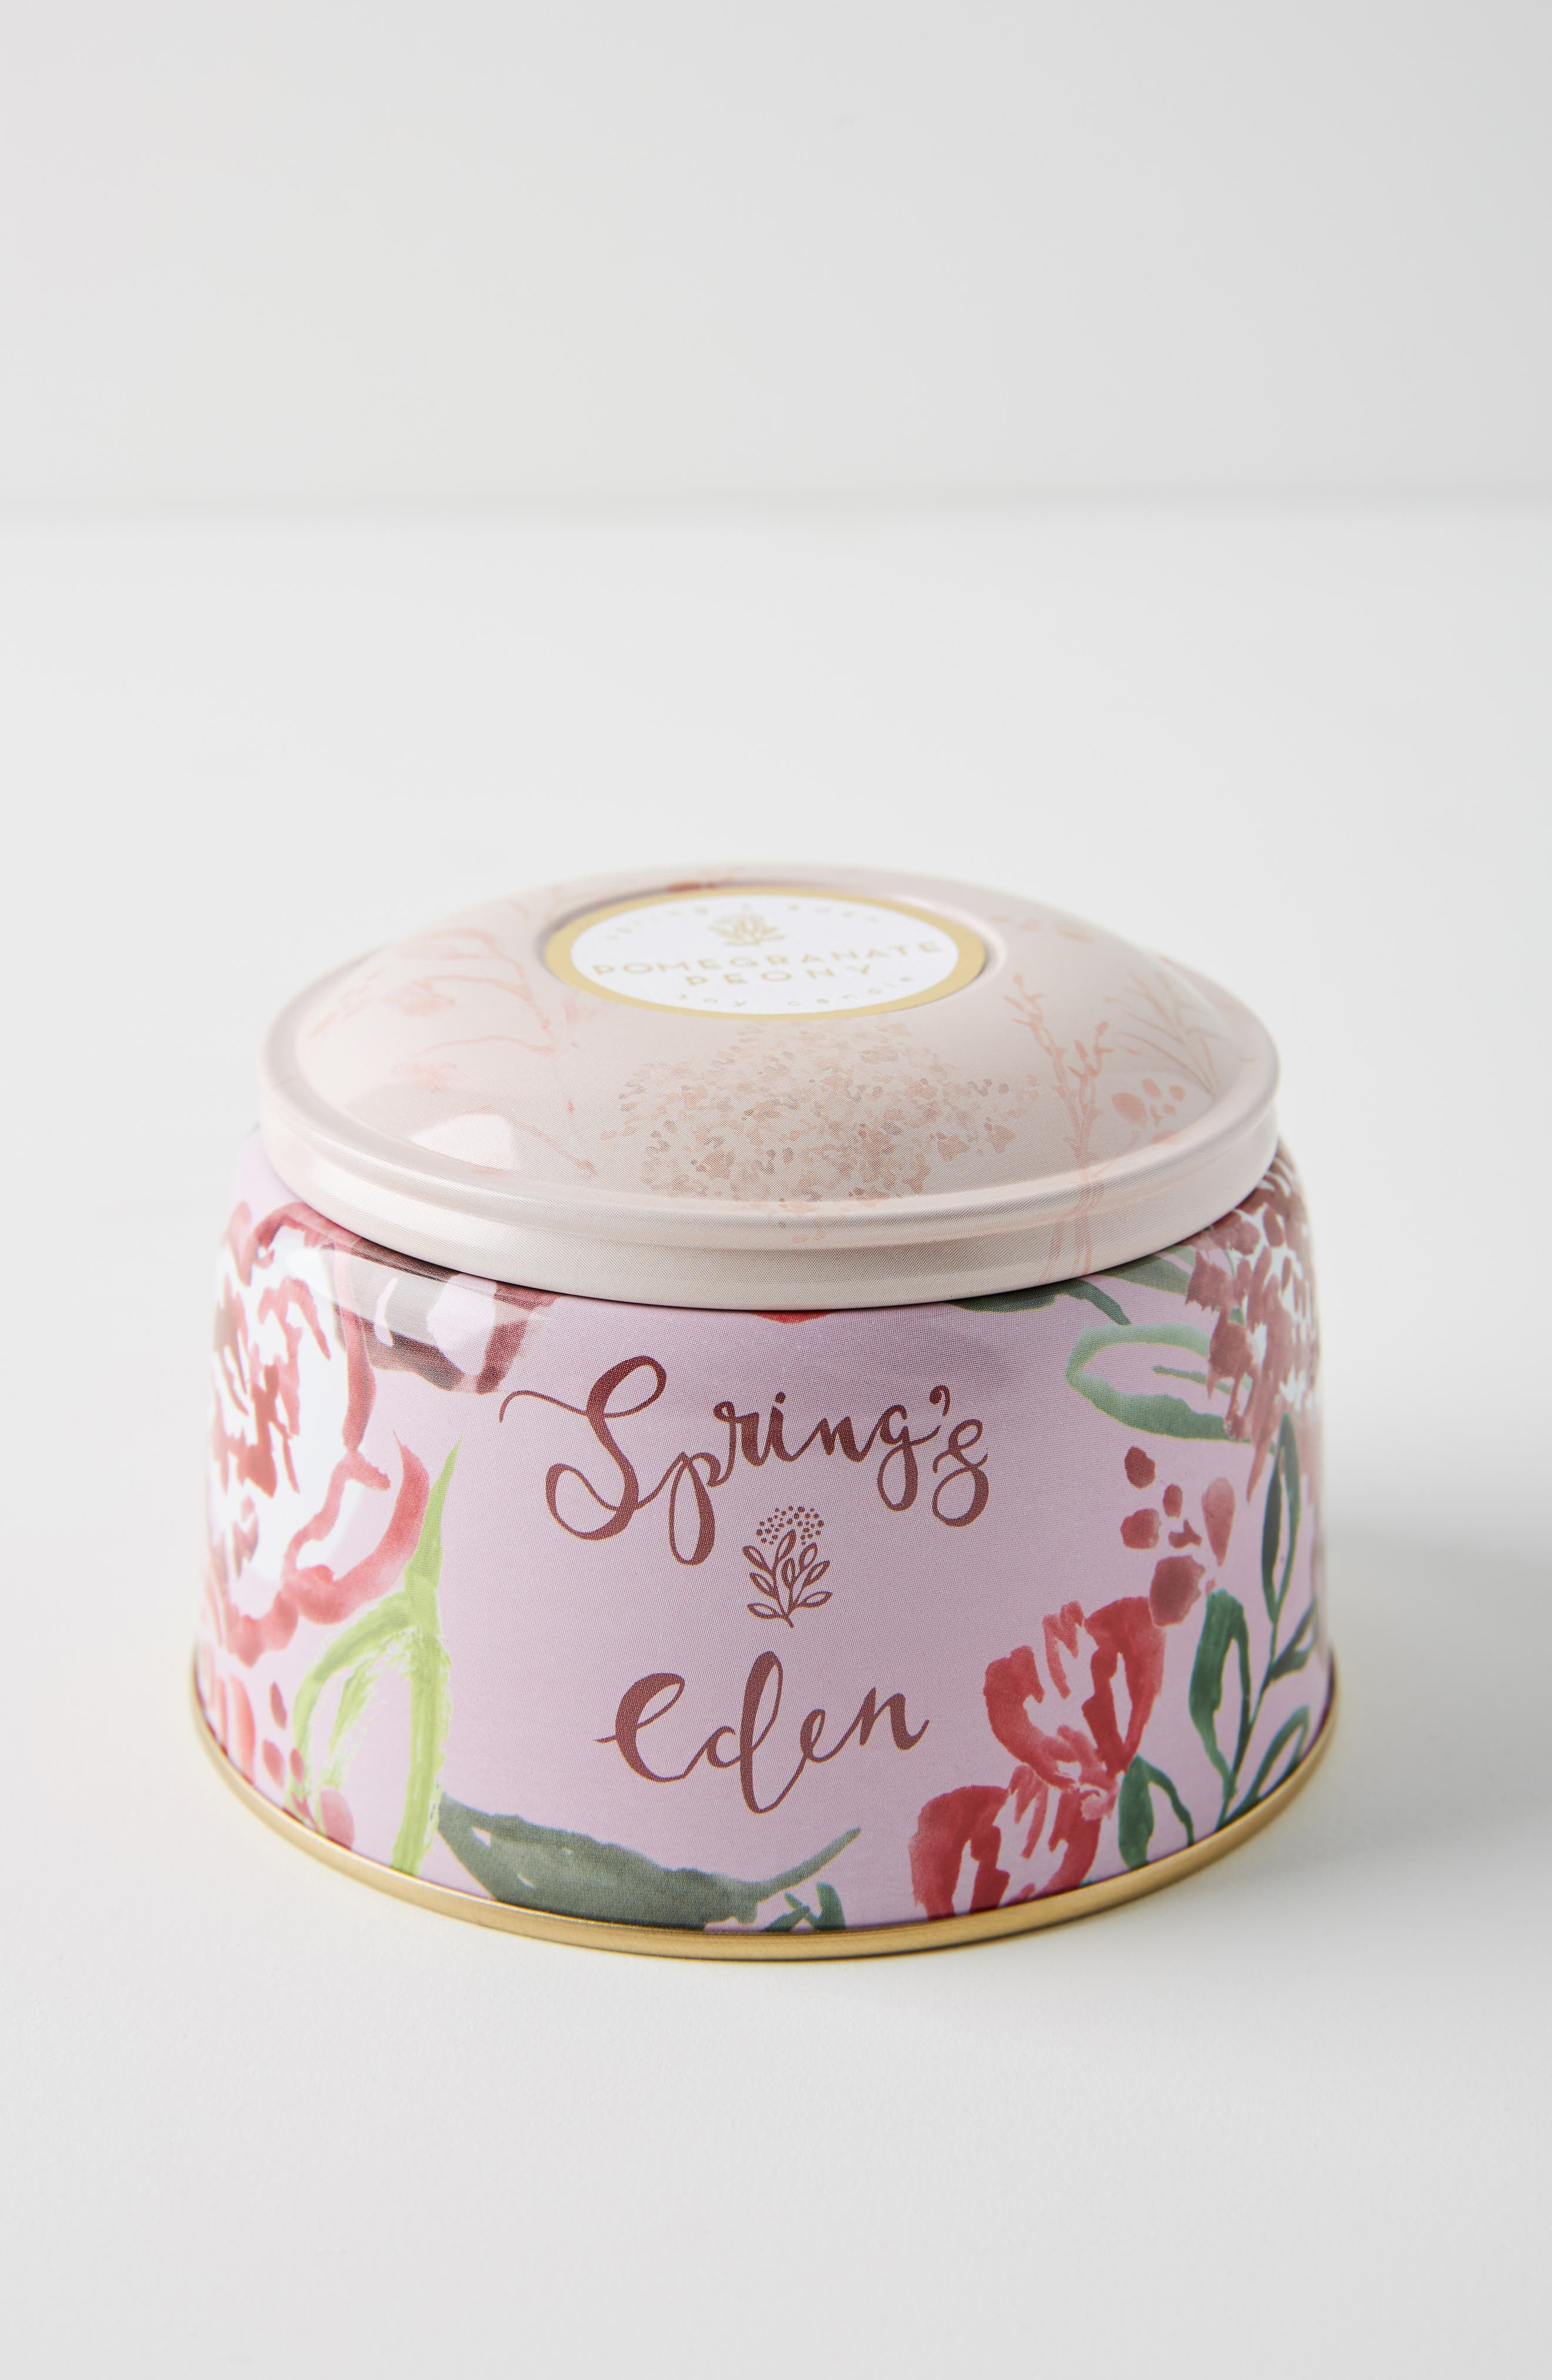 ANTHROPOLOGIE, Spring's Eden Tin Candle, Alternate thumbnail 2, color, POMEGRANATE PEONY